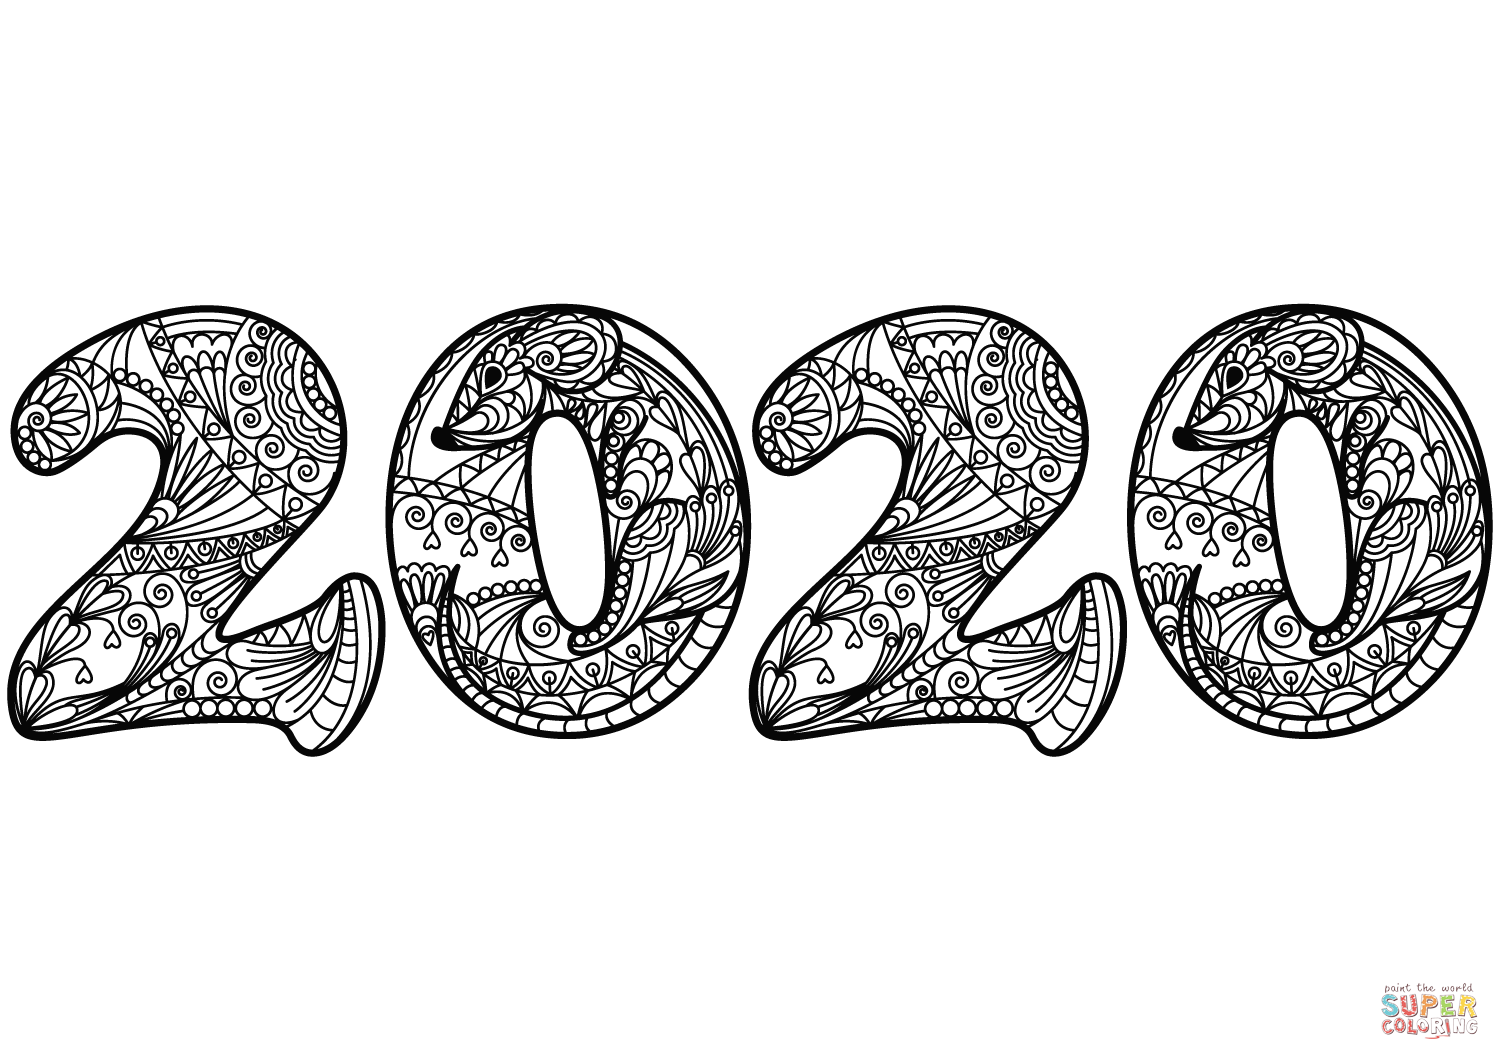 coloring pages 2020 2020 year of the metal rat page coloring pages printable 2020 coloring pages